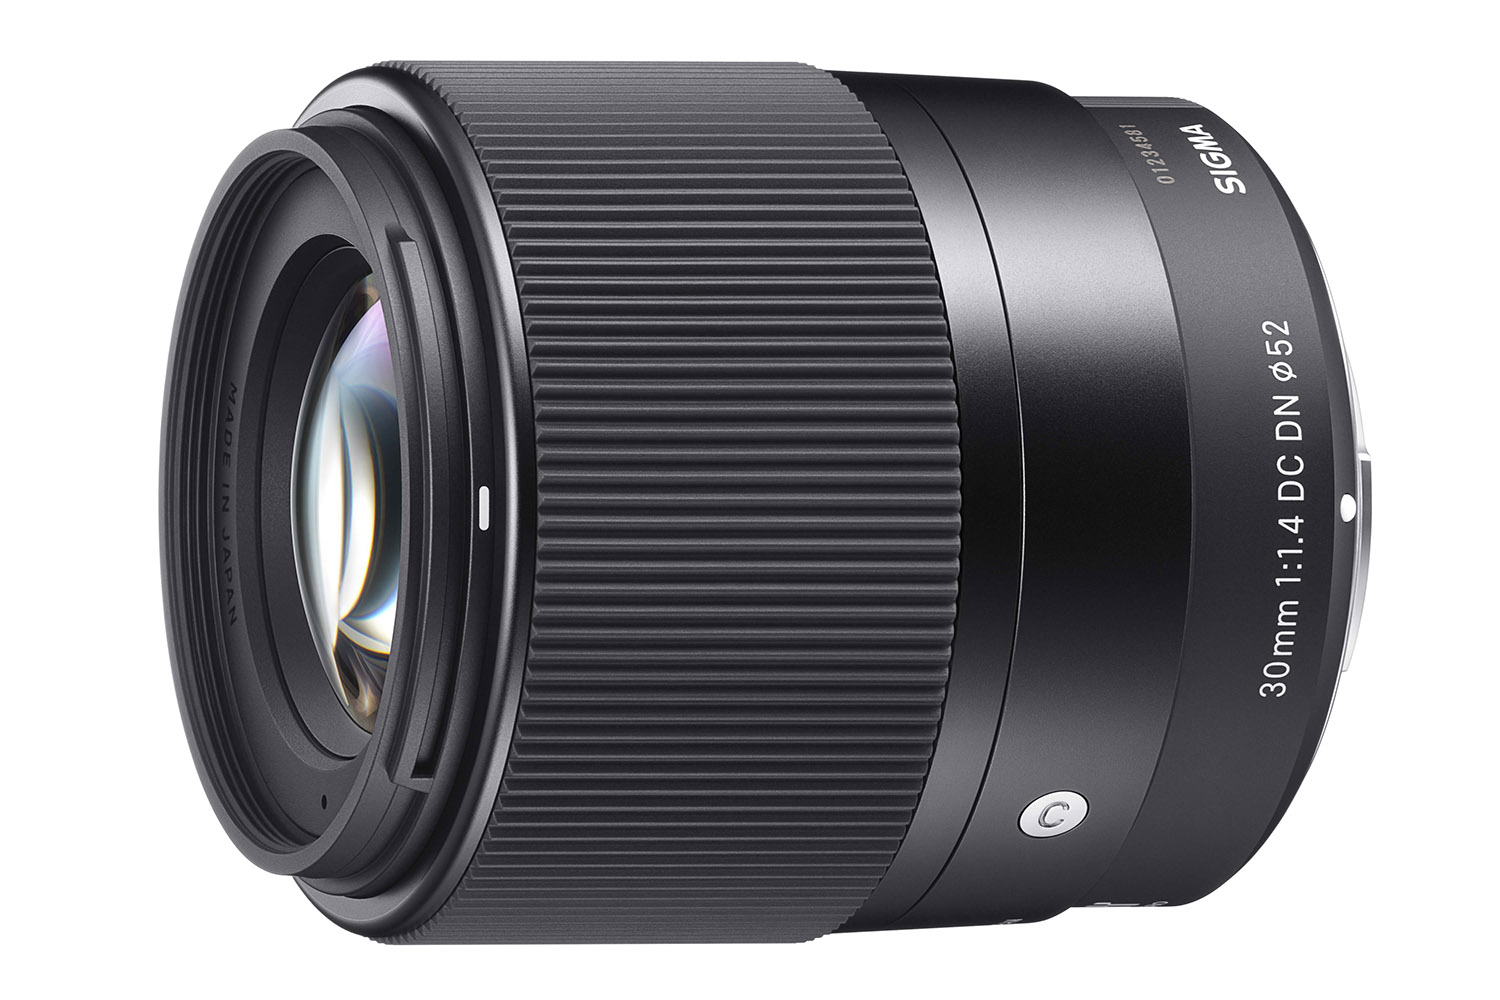 The Sigma 30mm f/1.4 DC DN | C lens for mirrorless cameras